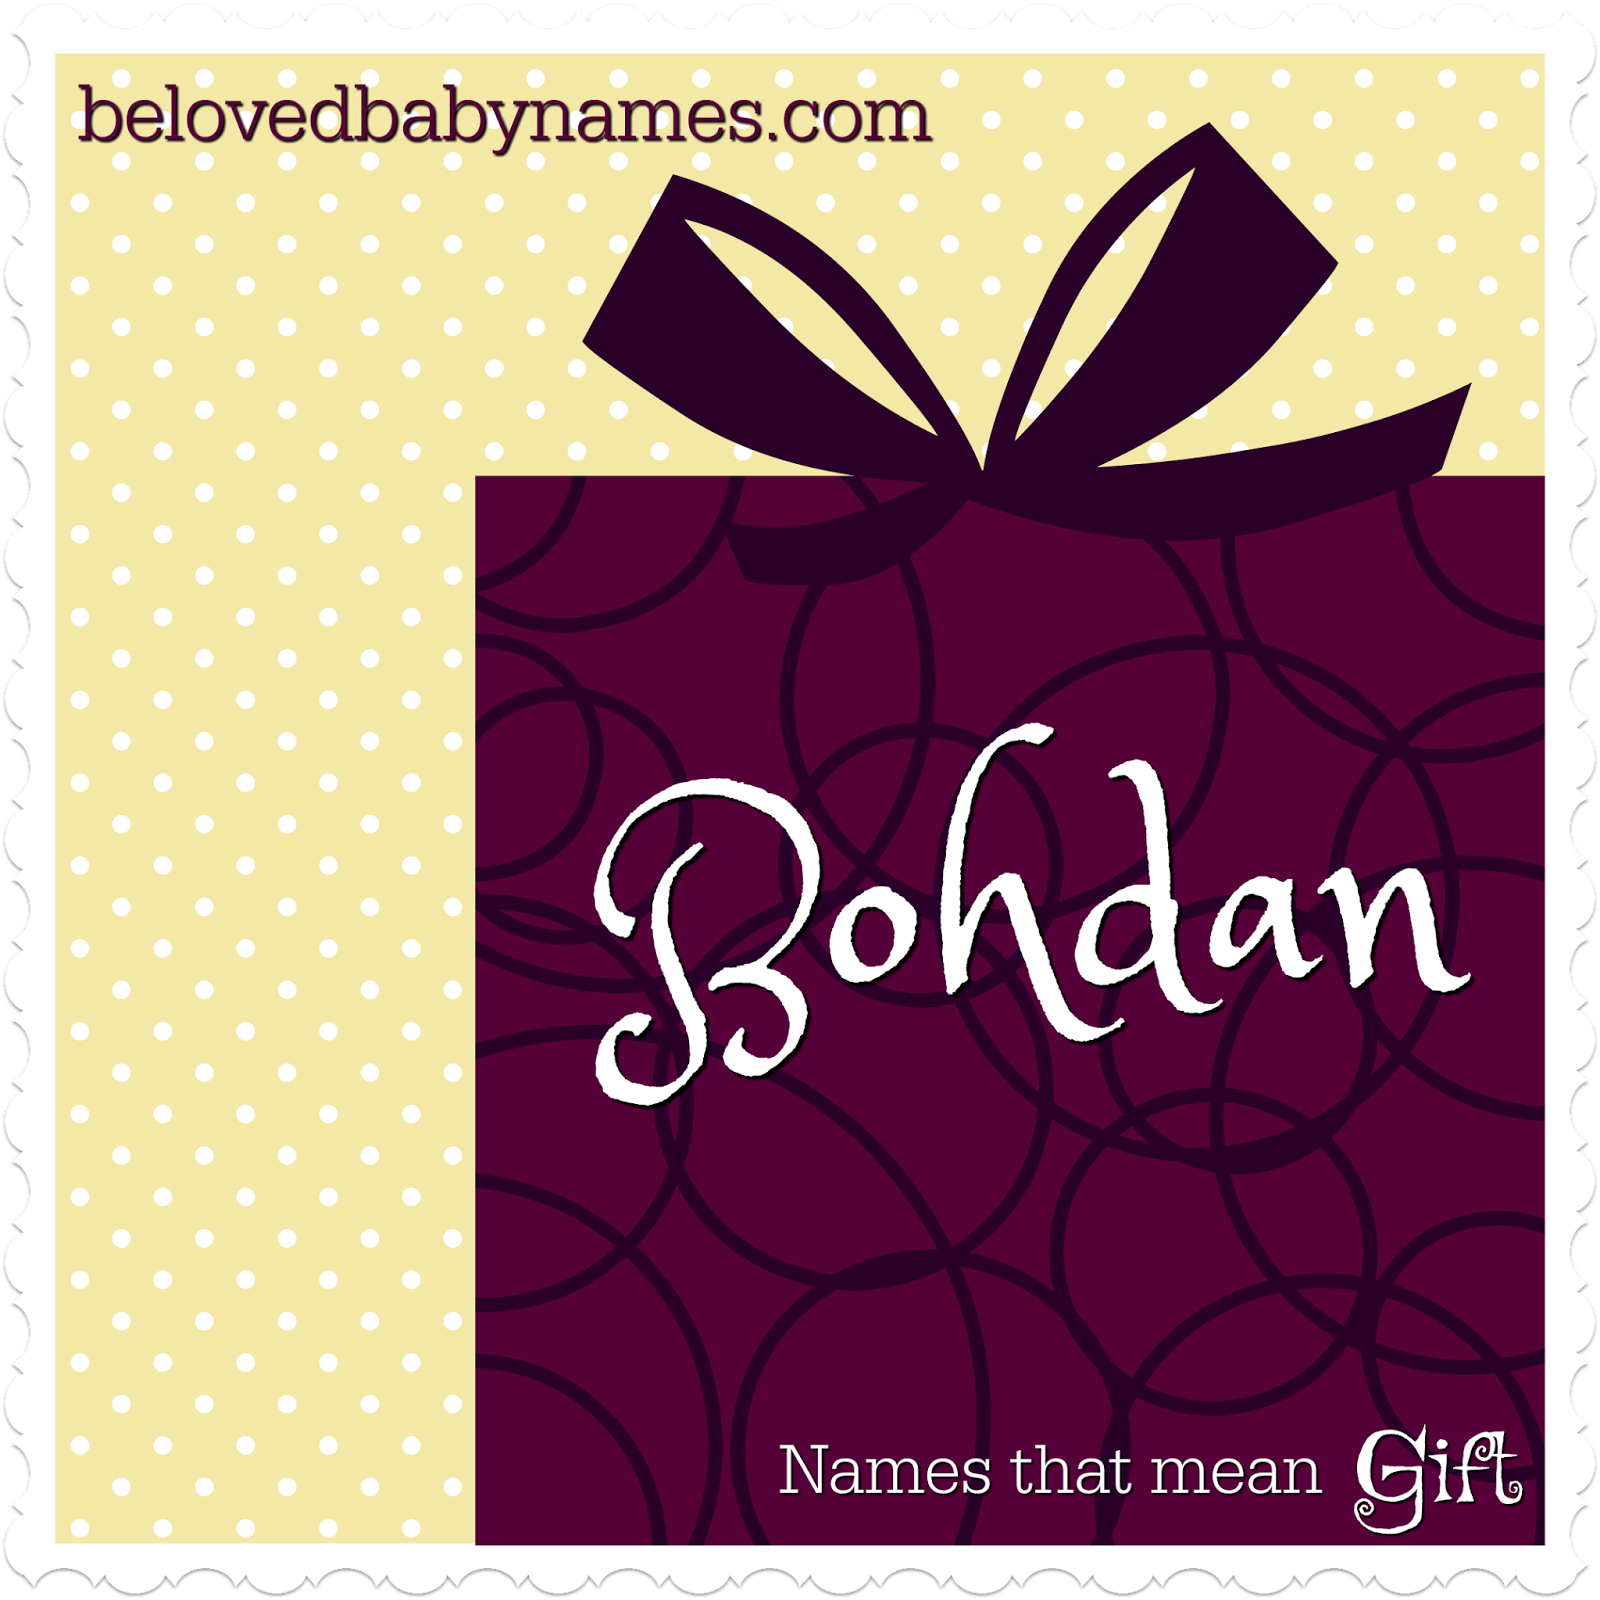 Beloved baby names 21 wonderful names that mean gift boys names negle Images